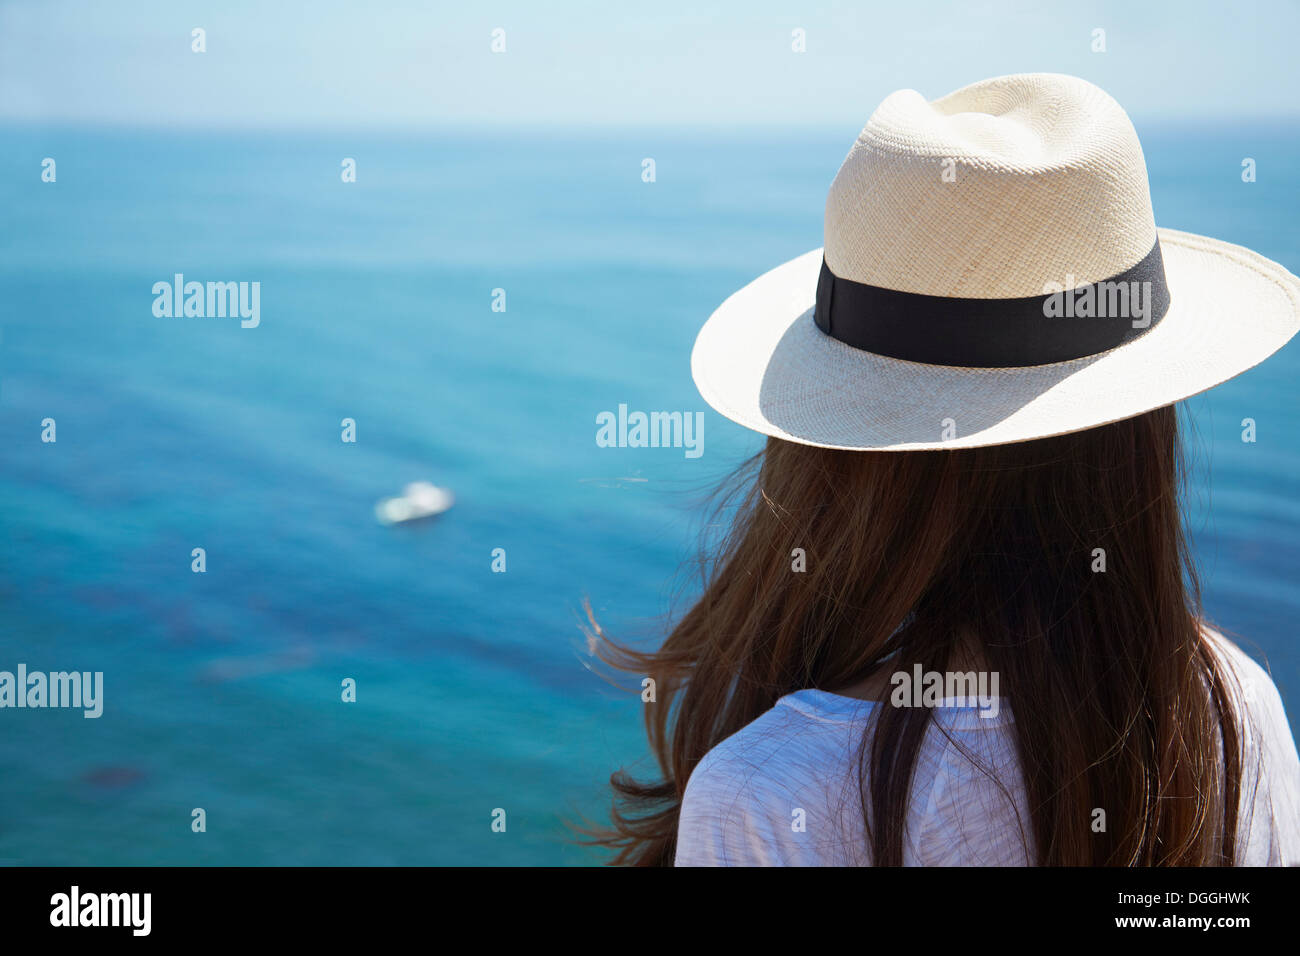 Young woman looking out to sea, Palos Verdes, California, USA Stock Photo